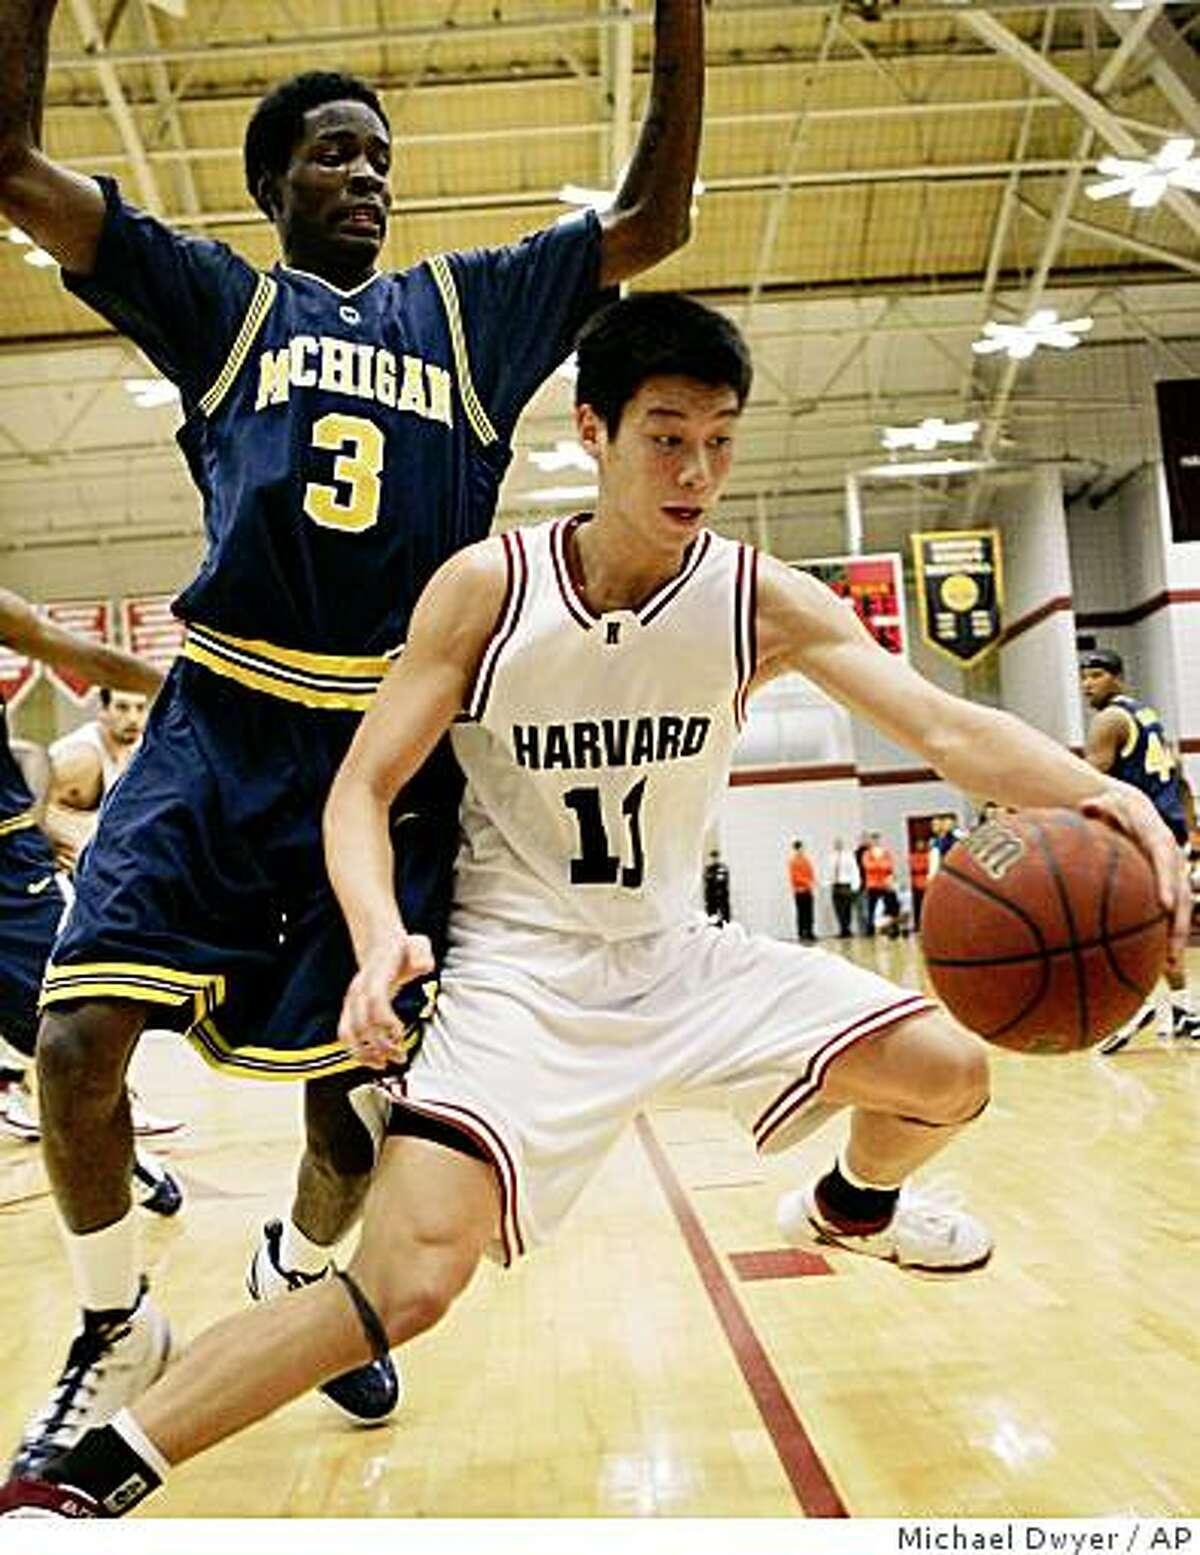 Harvard's Jeremy Lin (11) keeps the ball away from Michigan's Manny Harris (3) in the second half of a basketball game Saturday, Dec. 1, 2007, in Boston. Harvard won 62-51. (AP Photo/Michael Dwyer)